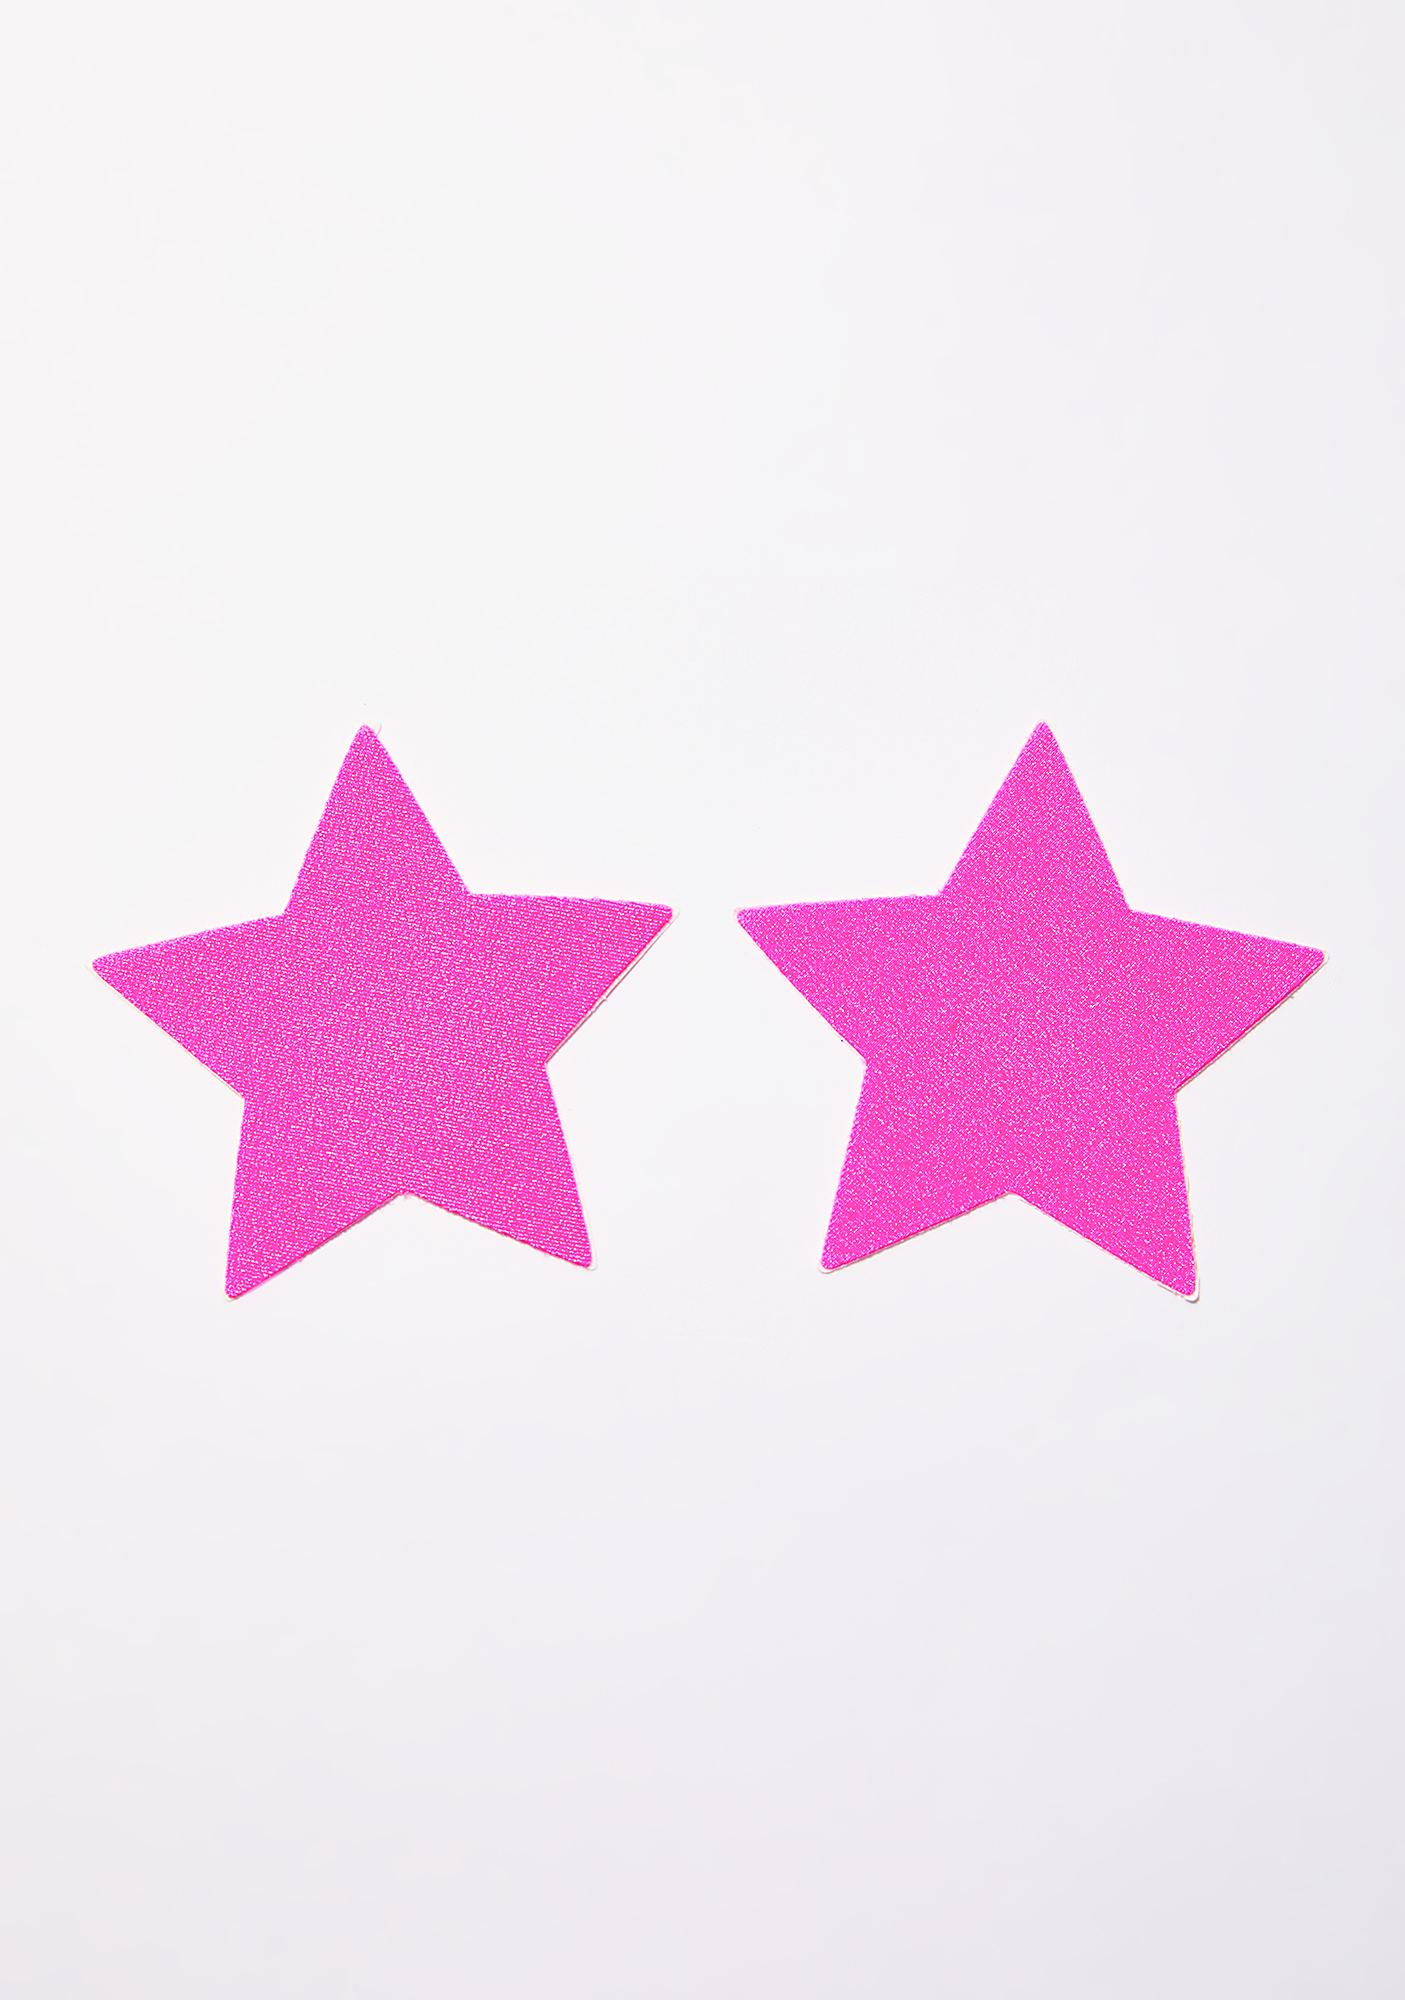 Pastease Neon Pink Day-Glow Star Pasties